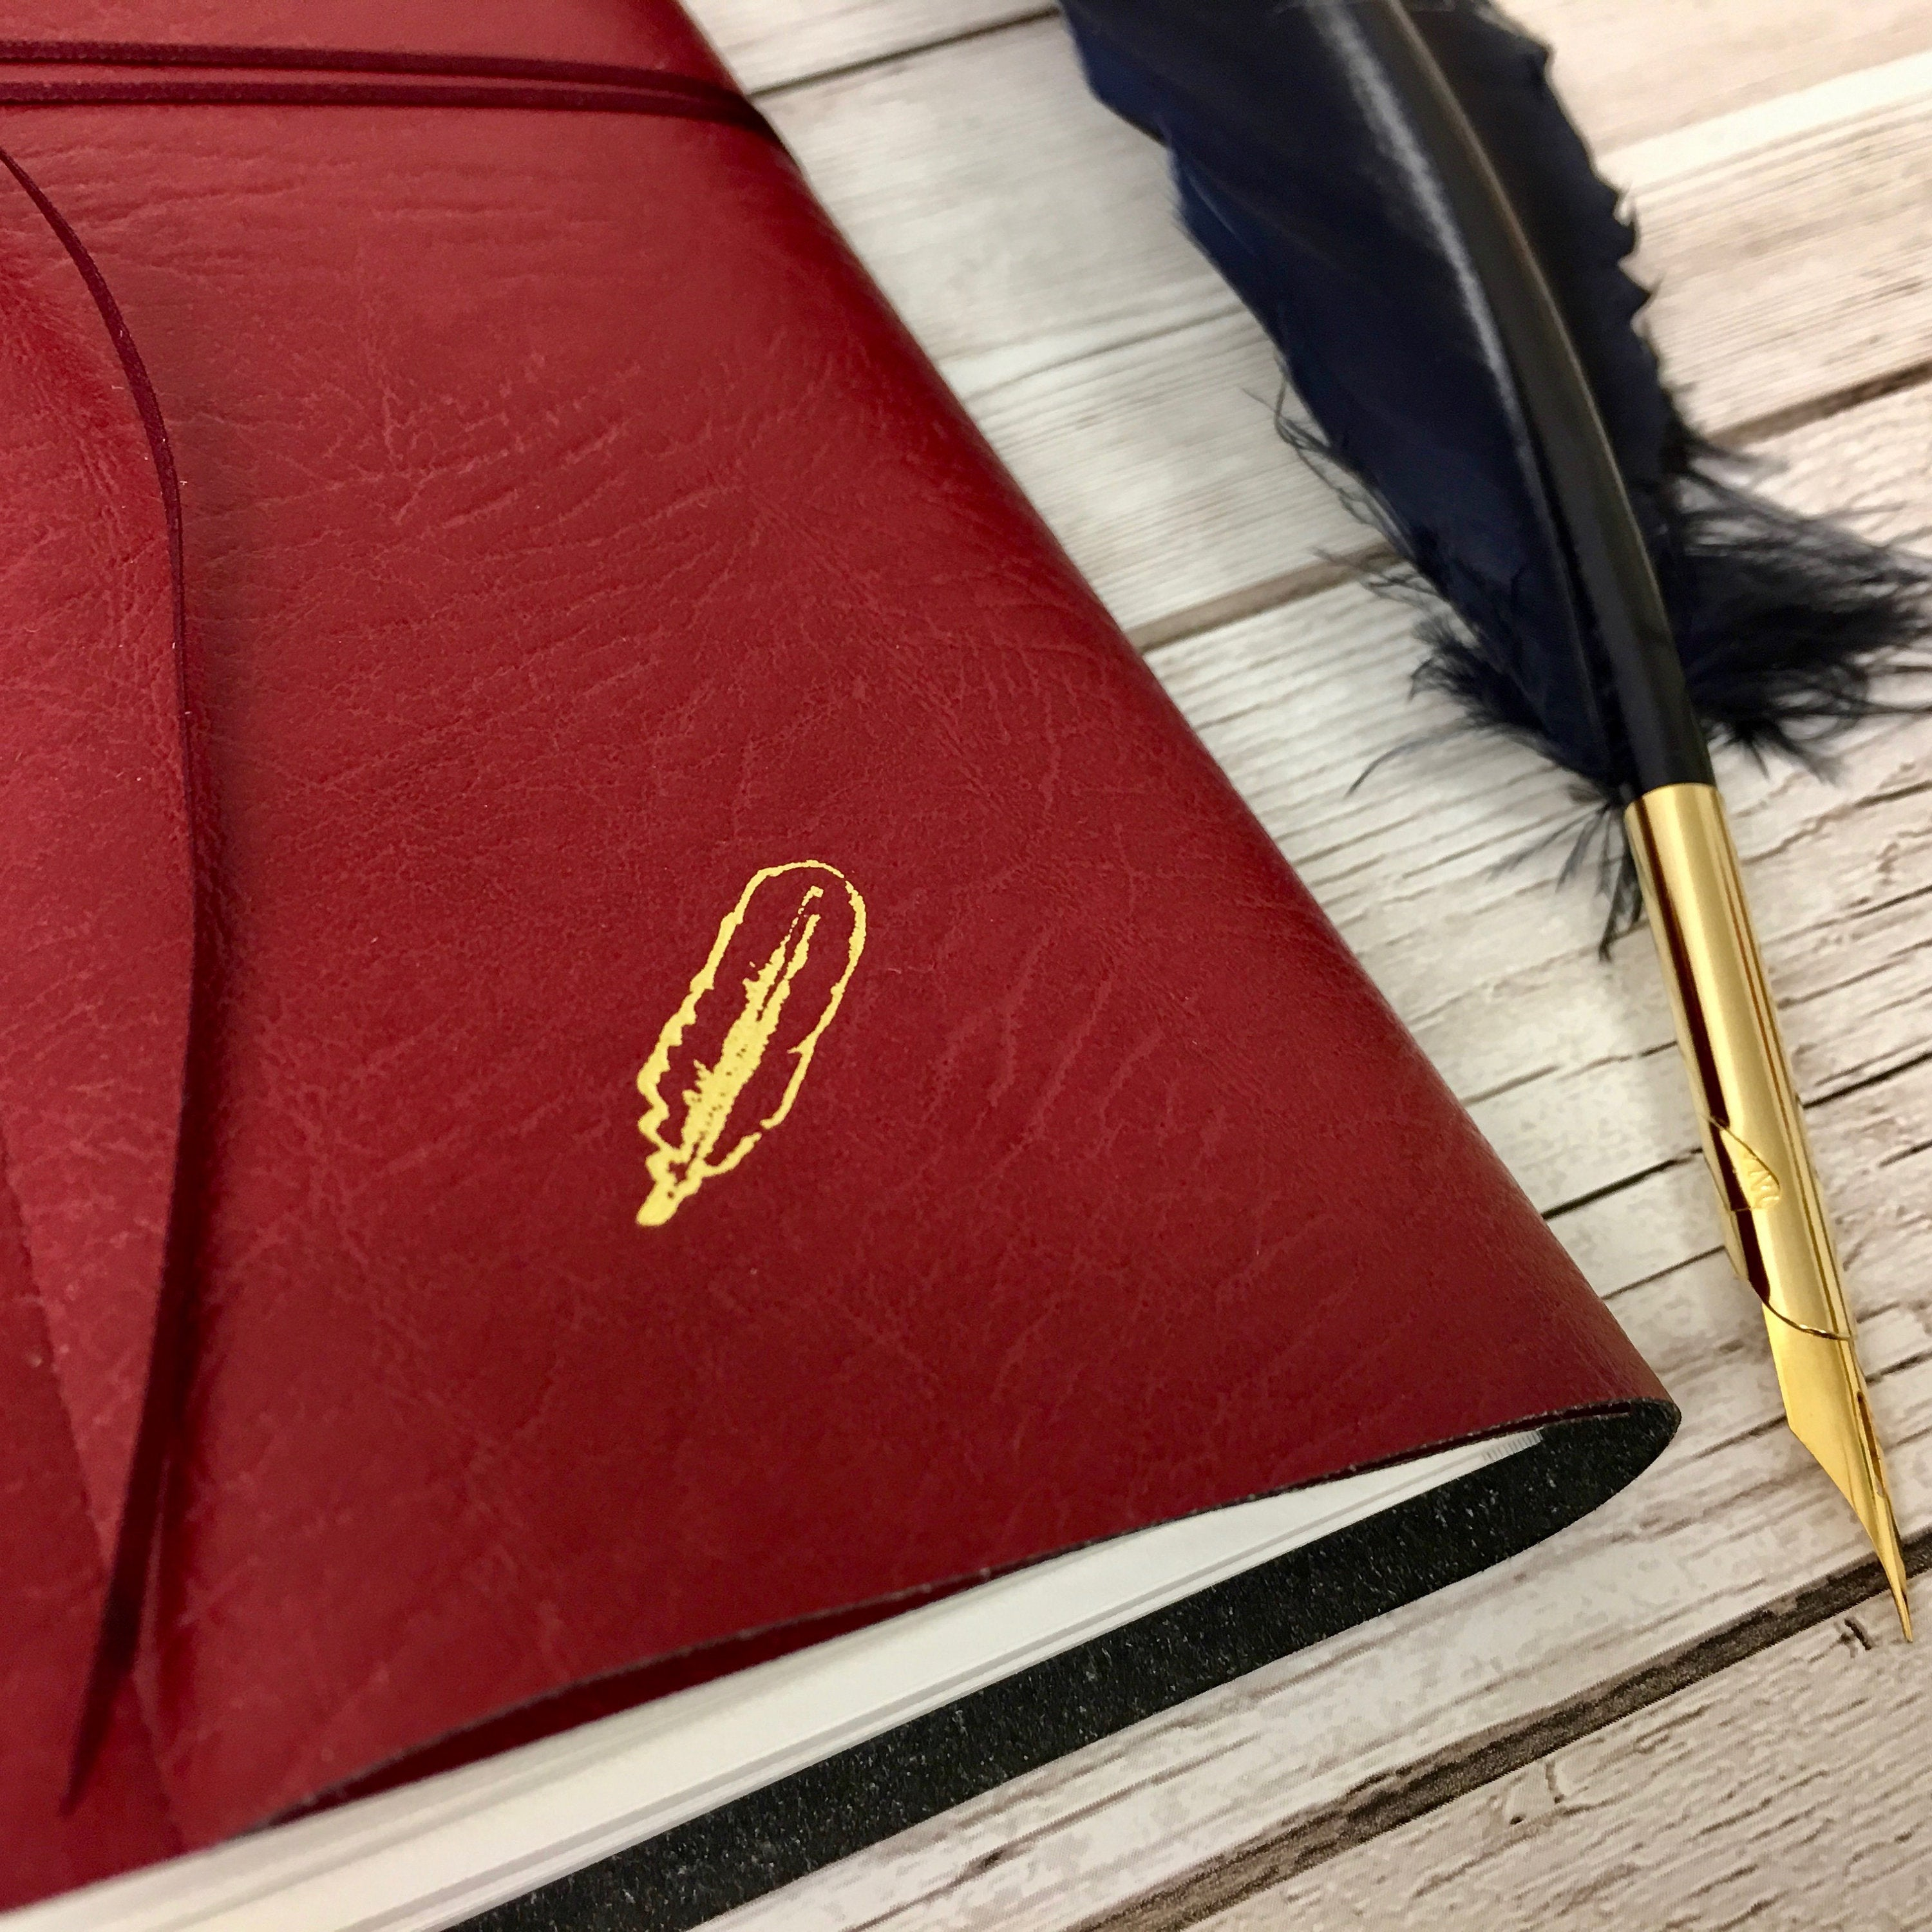 Close up of gold embossed quill on red leather cover